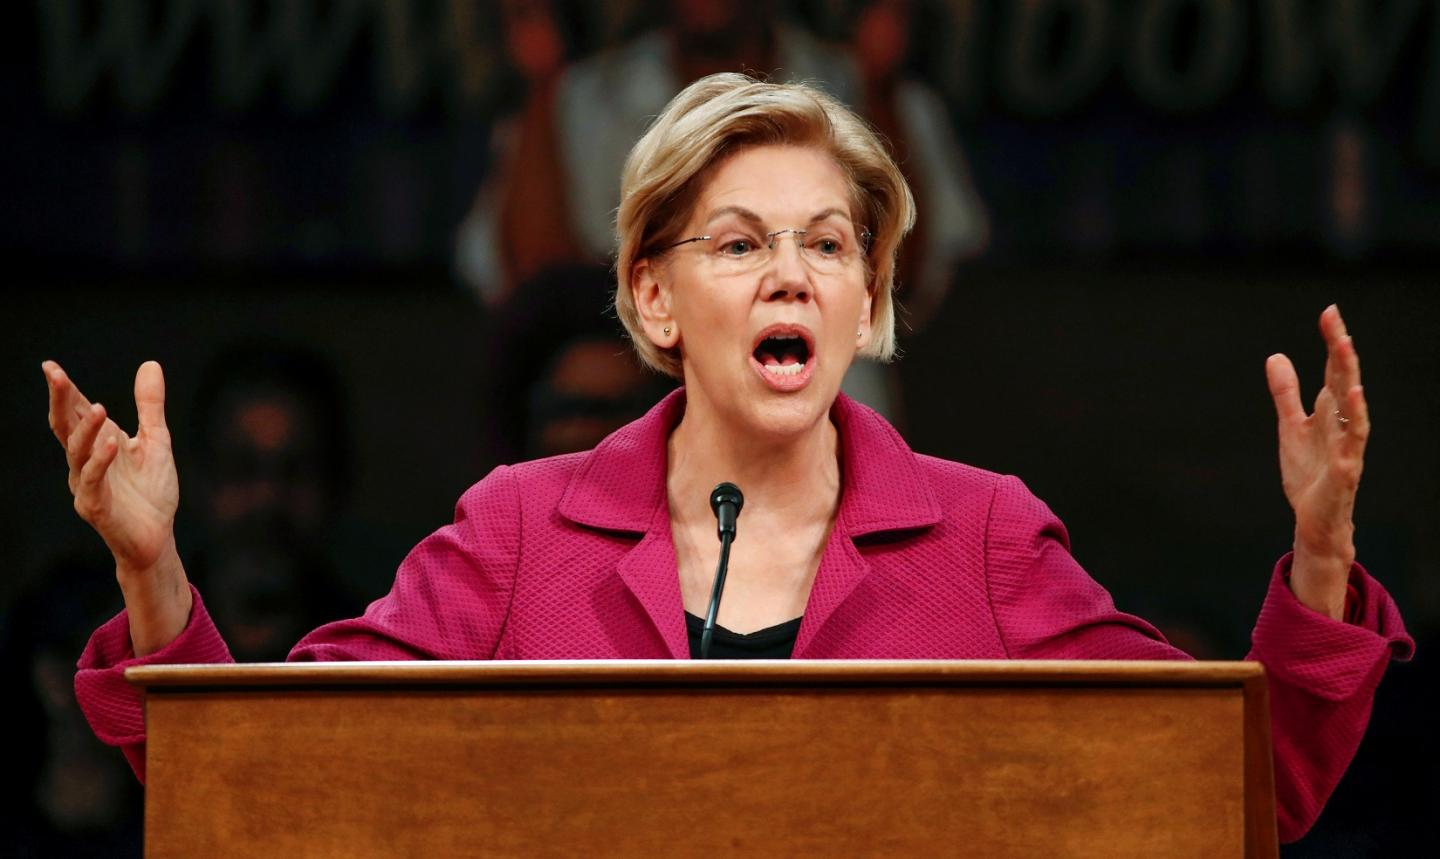 Elizabeth Warren Wants to Transfer $640 Billion in Student Loan Debt to Taxpayers